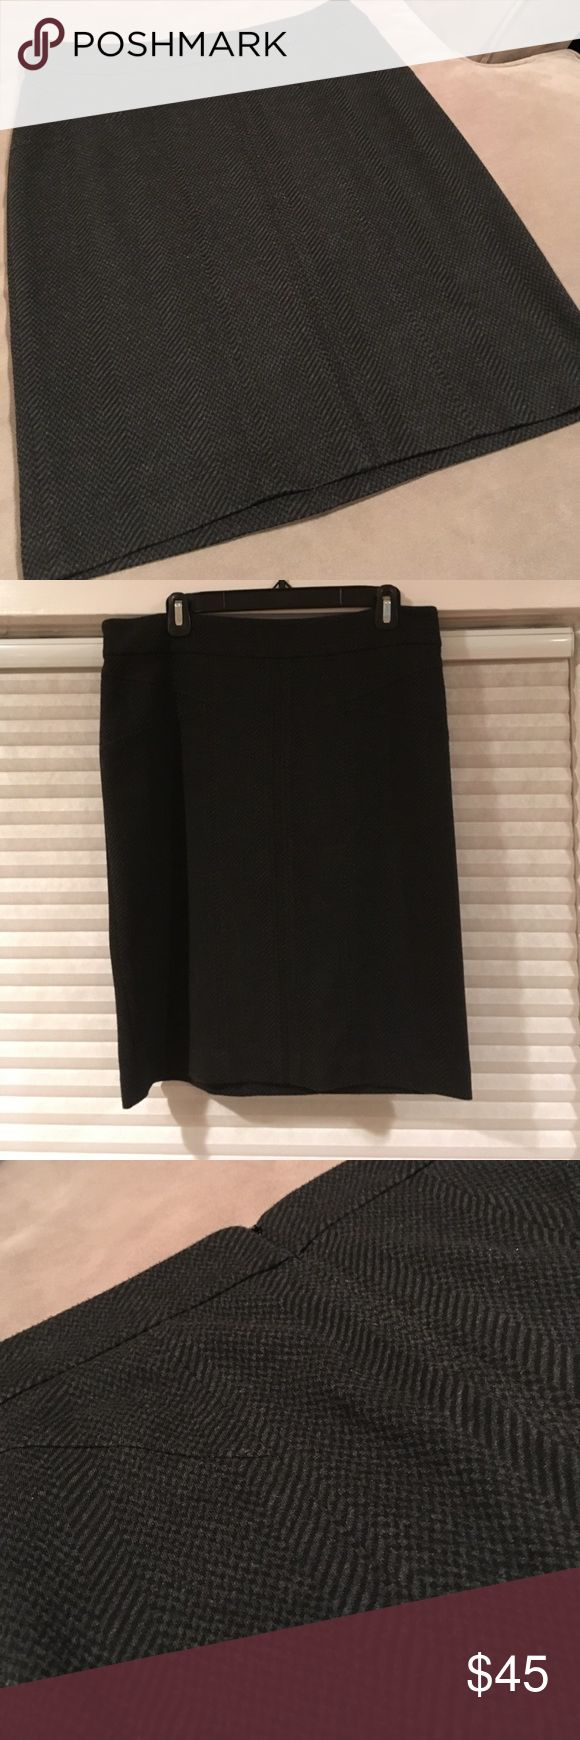 BCBGMAXAZRIA Skirt - Size L - rarely worn! BCBGMAXAZRIA pencil skirt, with a black and gray striped pattern. Size L. Appropriate length from waistband to the bottom is 22 and 1/2 inches. 58% polyester/30% rayon/10% nylon/2% spandex blend. It was rarely worn, and is in pristine condition. BCBGMaxAzria Skirts Pencil